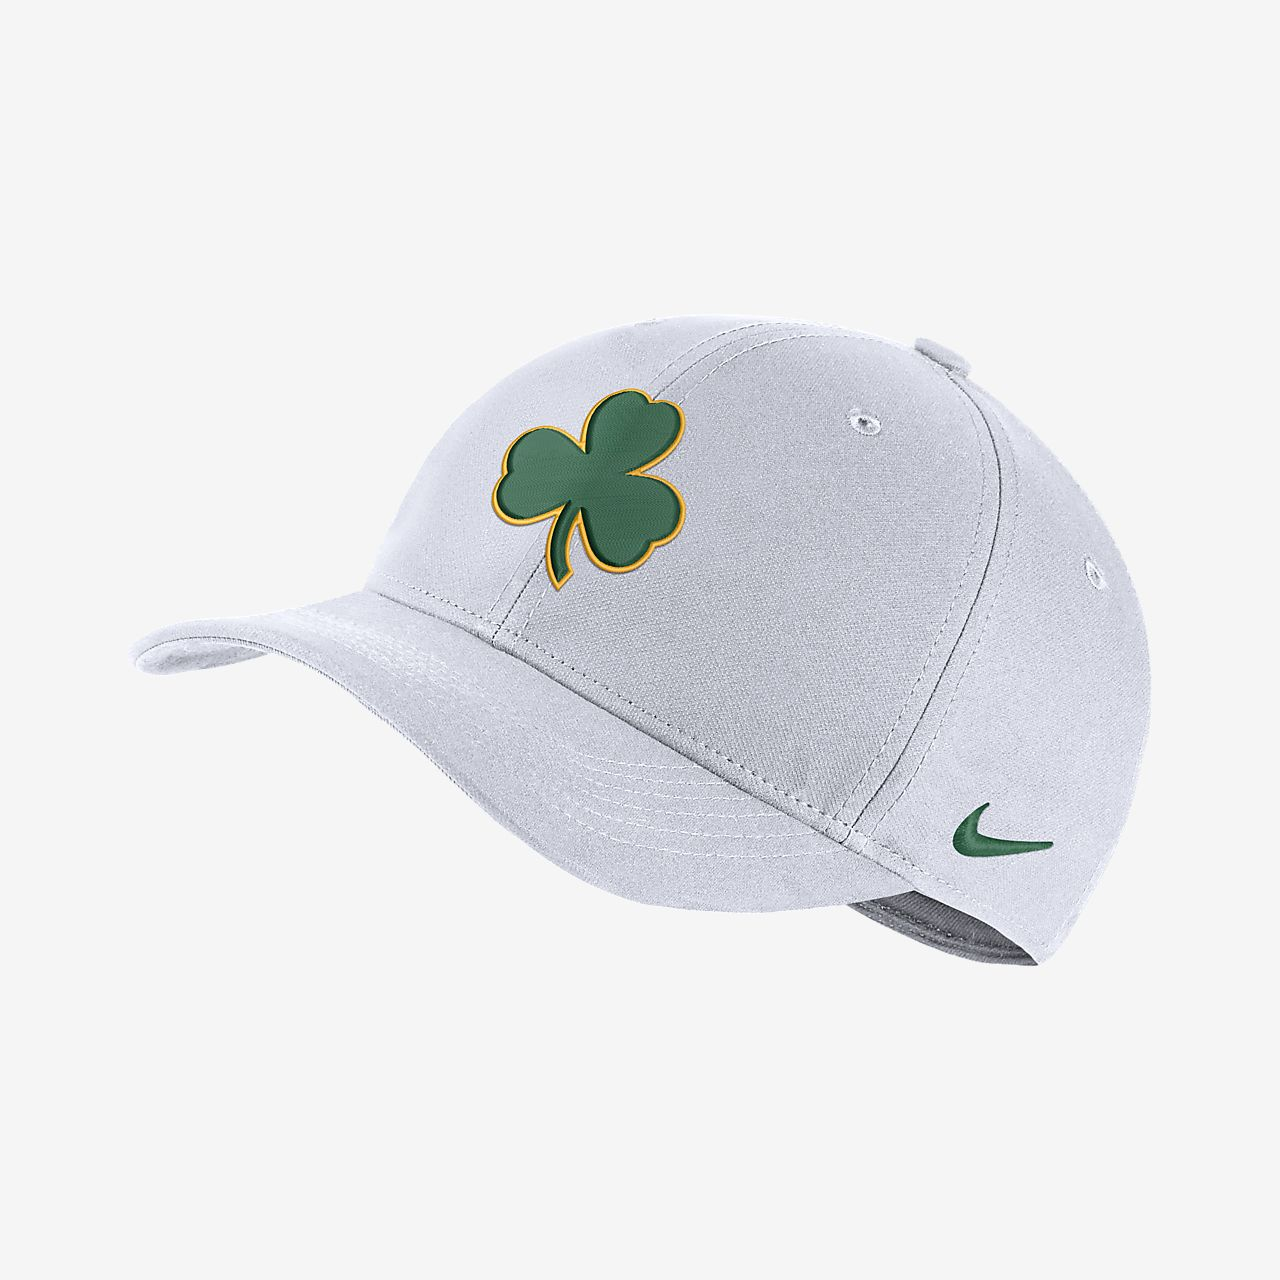 Boston Celtics City Edition Nike AeroBill Classic99 NBA Hat. Nike.com GB 0a3f0426634